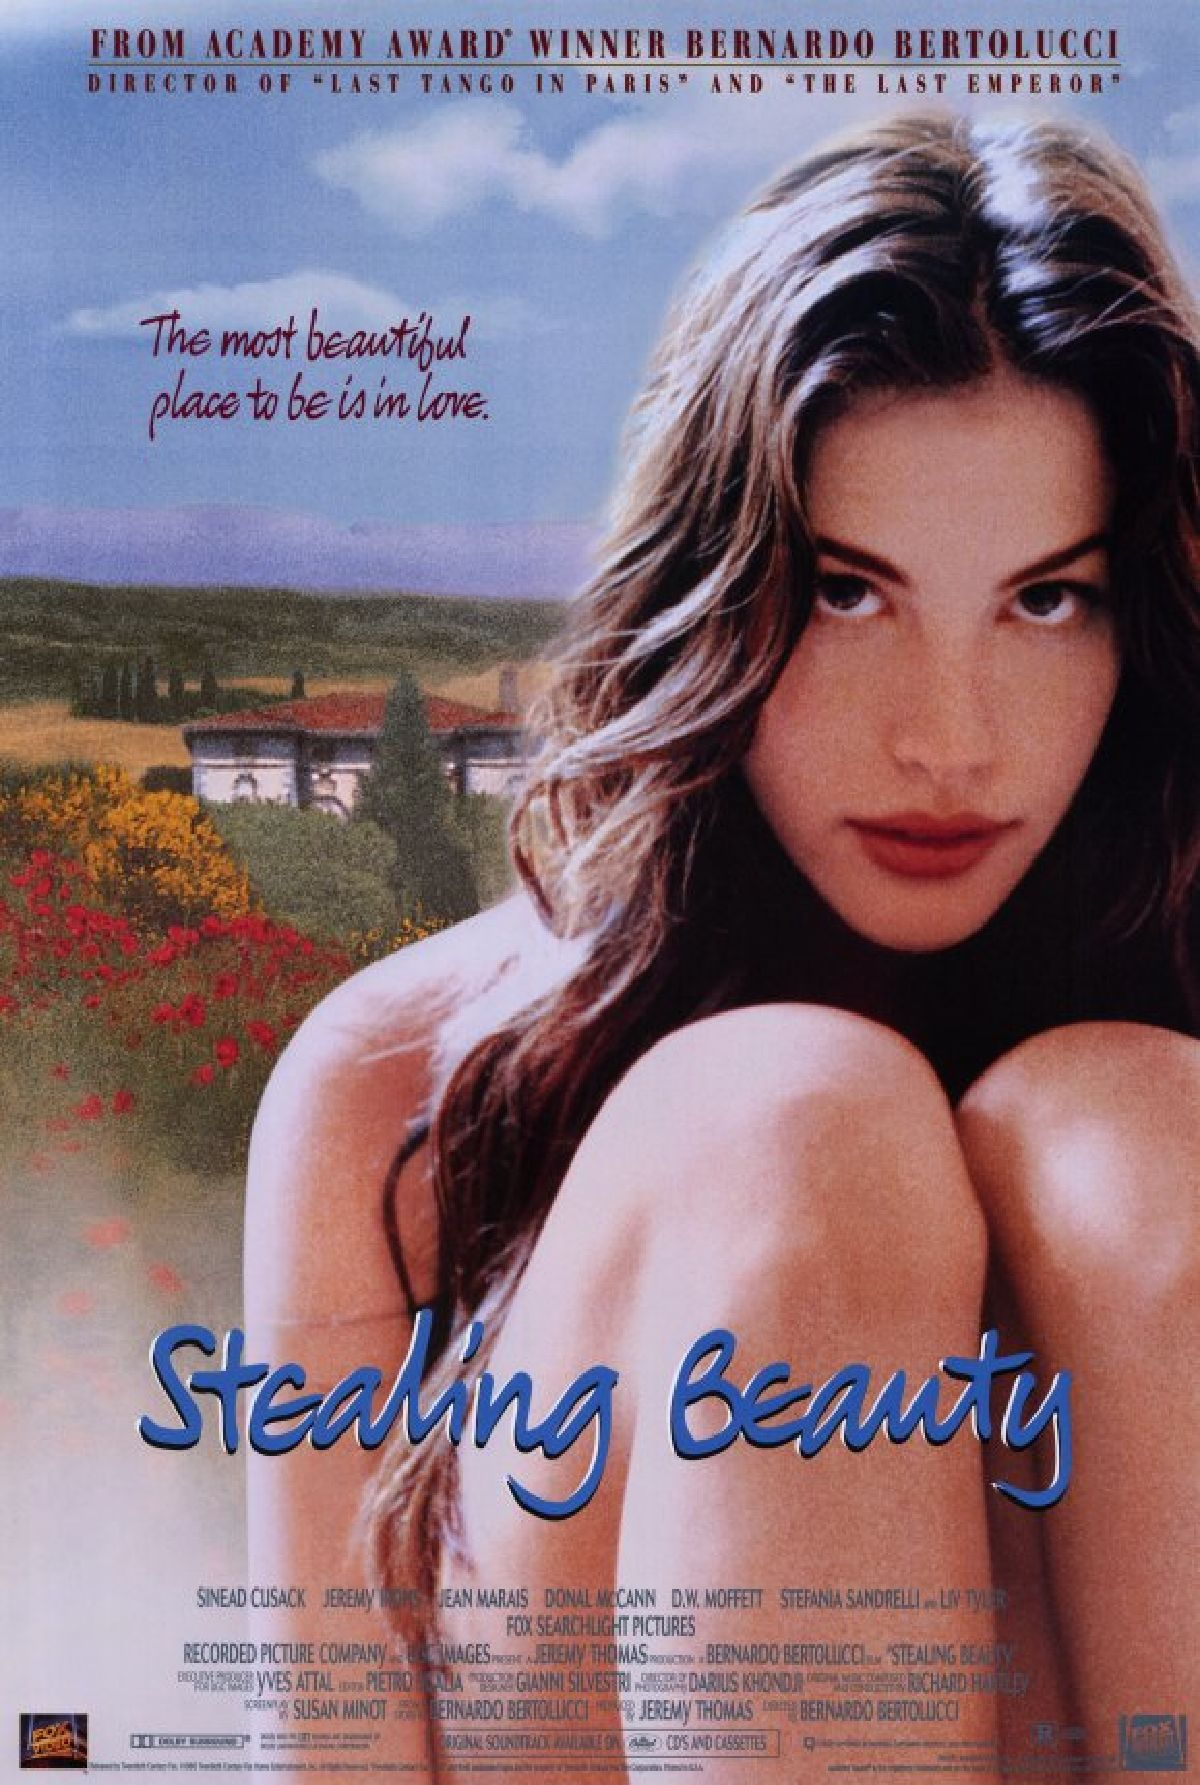 'Stealing Beauty' movie poster